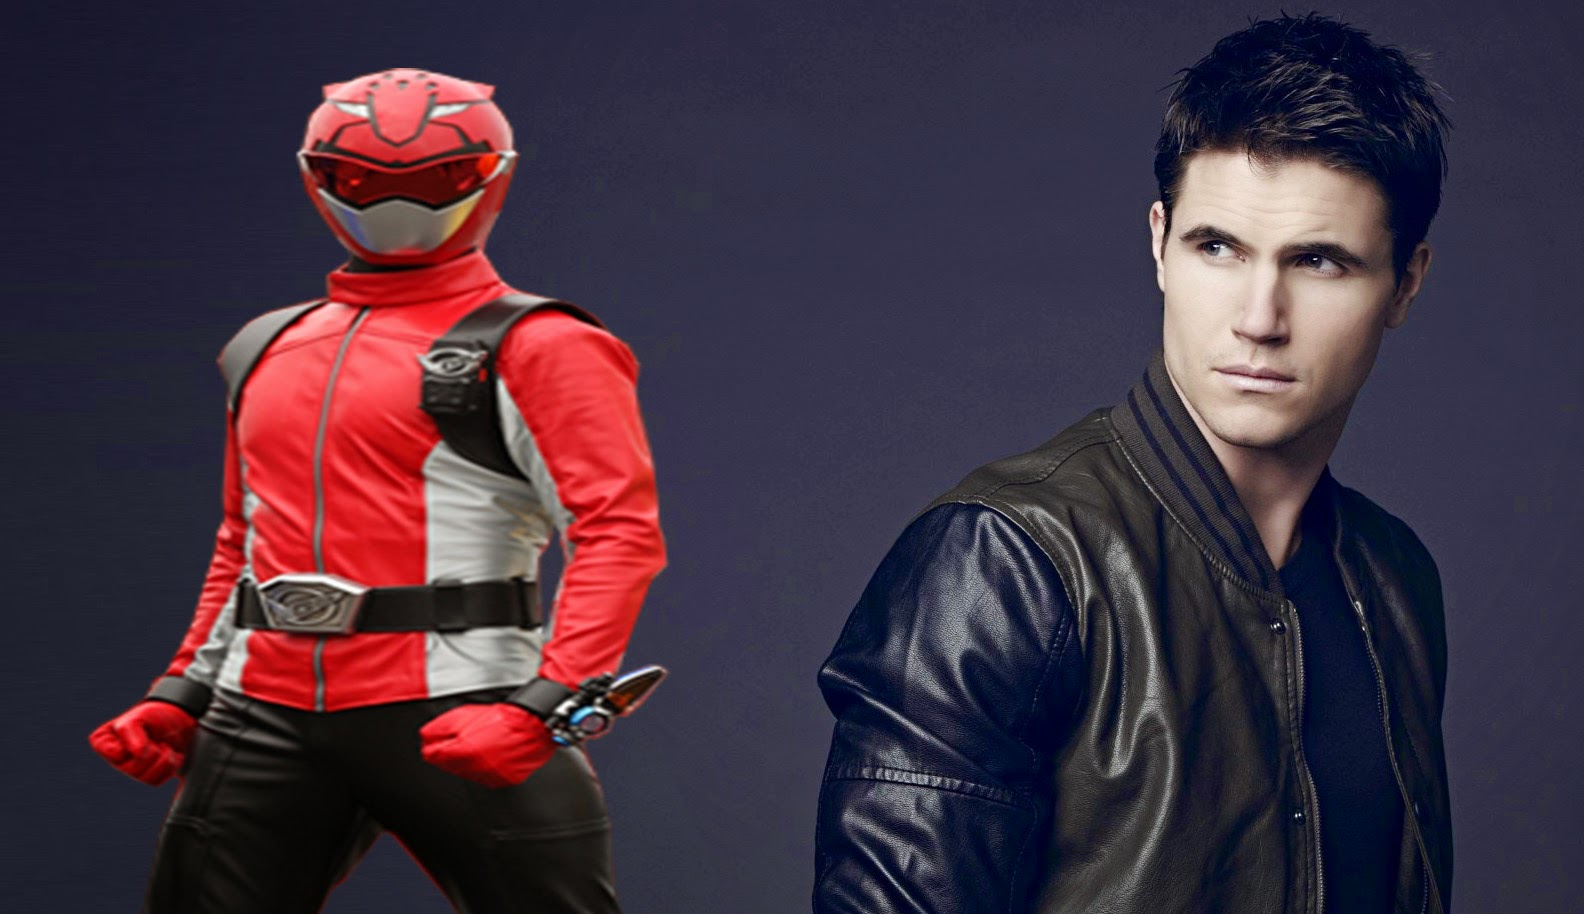 Power Rangers Reboot Casting Call in 'power Rangers' Reboot